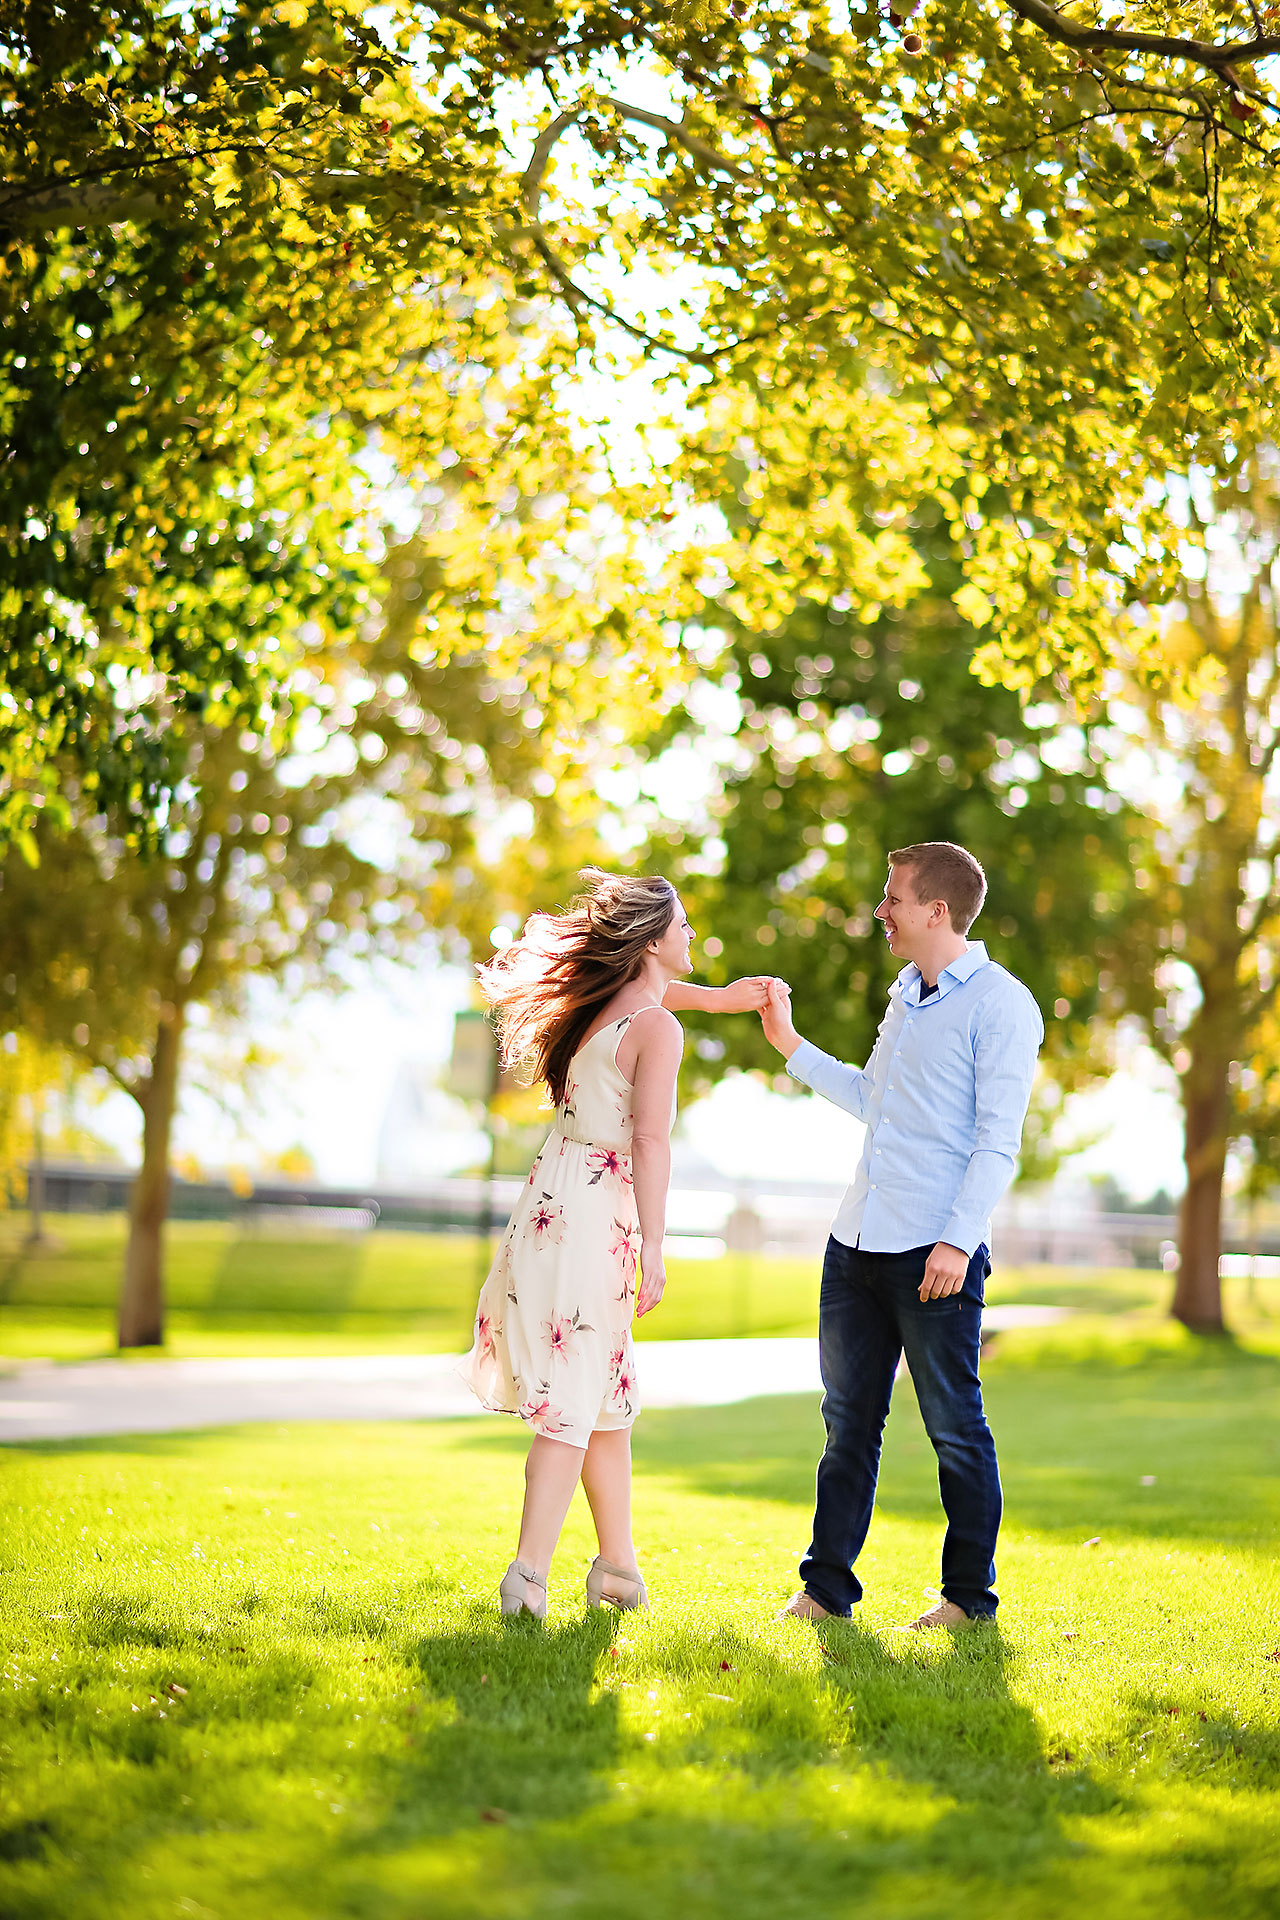 Chelsea Jeff Downtown Indy Engagement Session 168